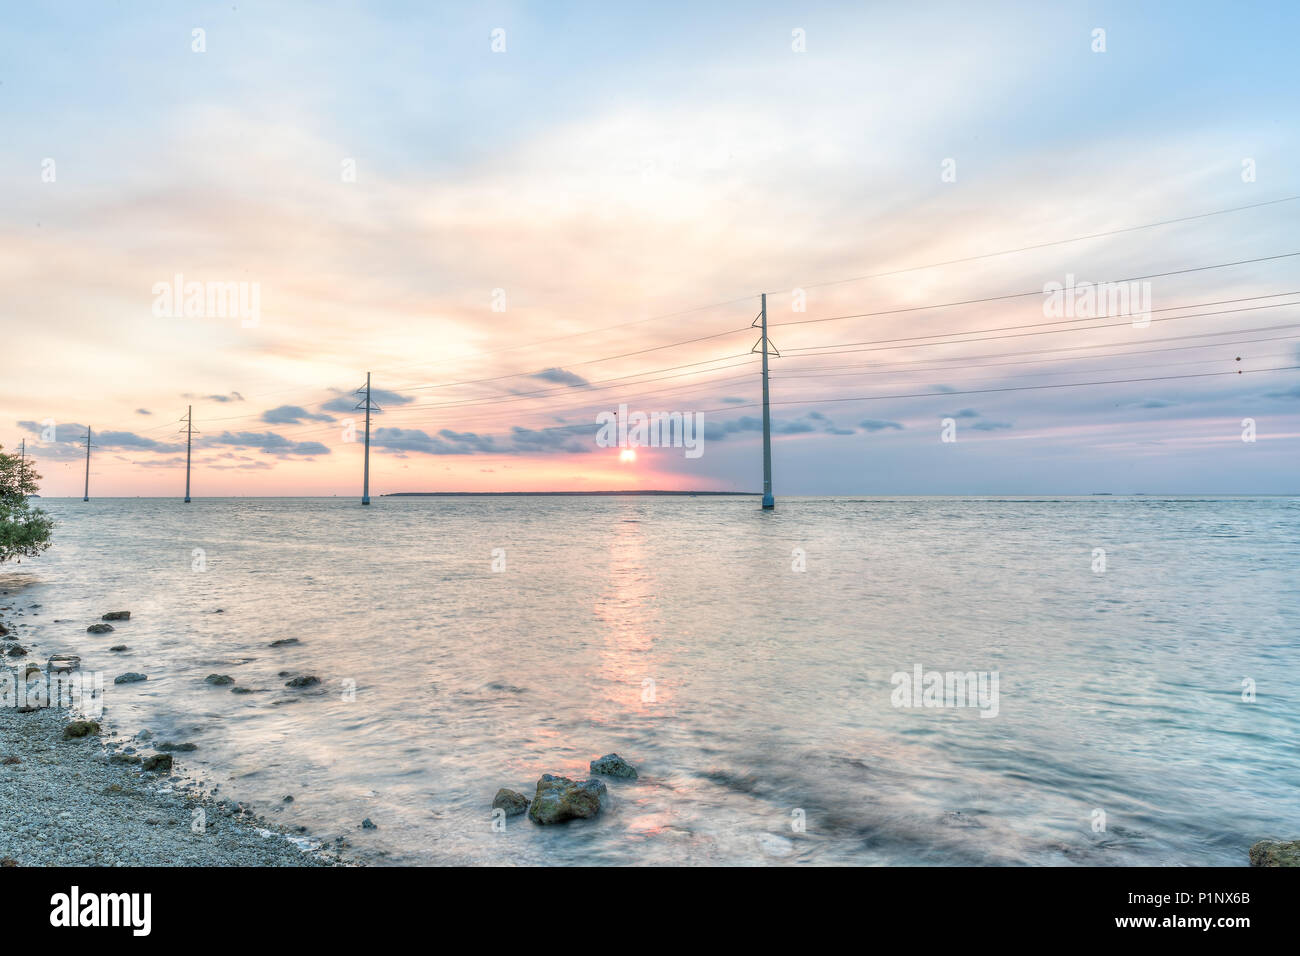 Sunset in Islamorada, Florida Keys, with pink sky, rocks, power lines, rocky beach, hdr green shallow water on gulf of Mexico, or Atlantic Ocean, hori Stock Photo